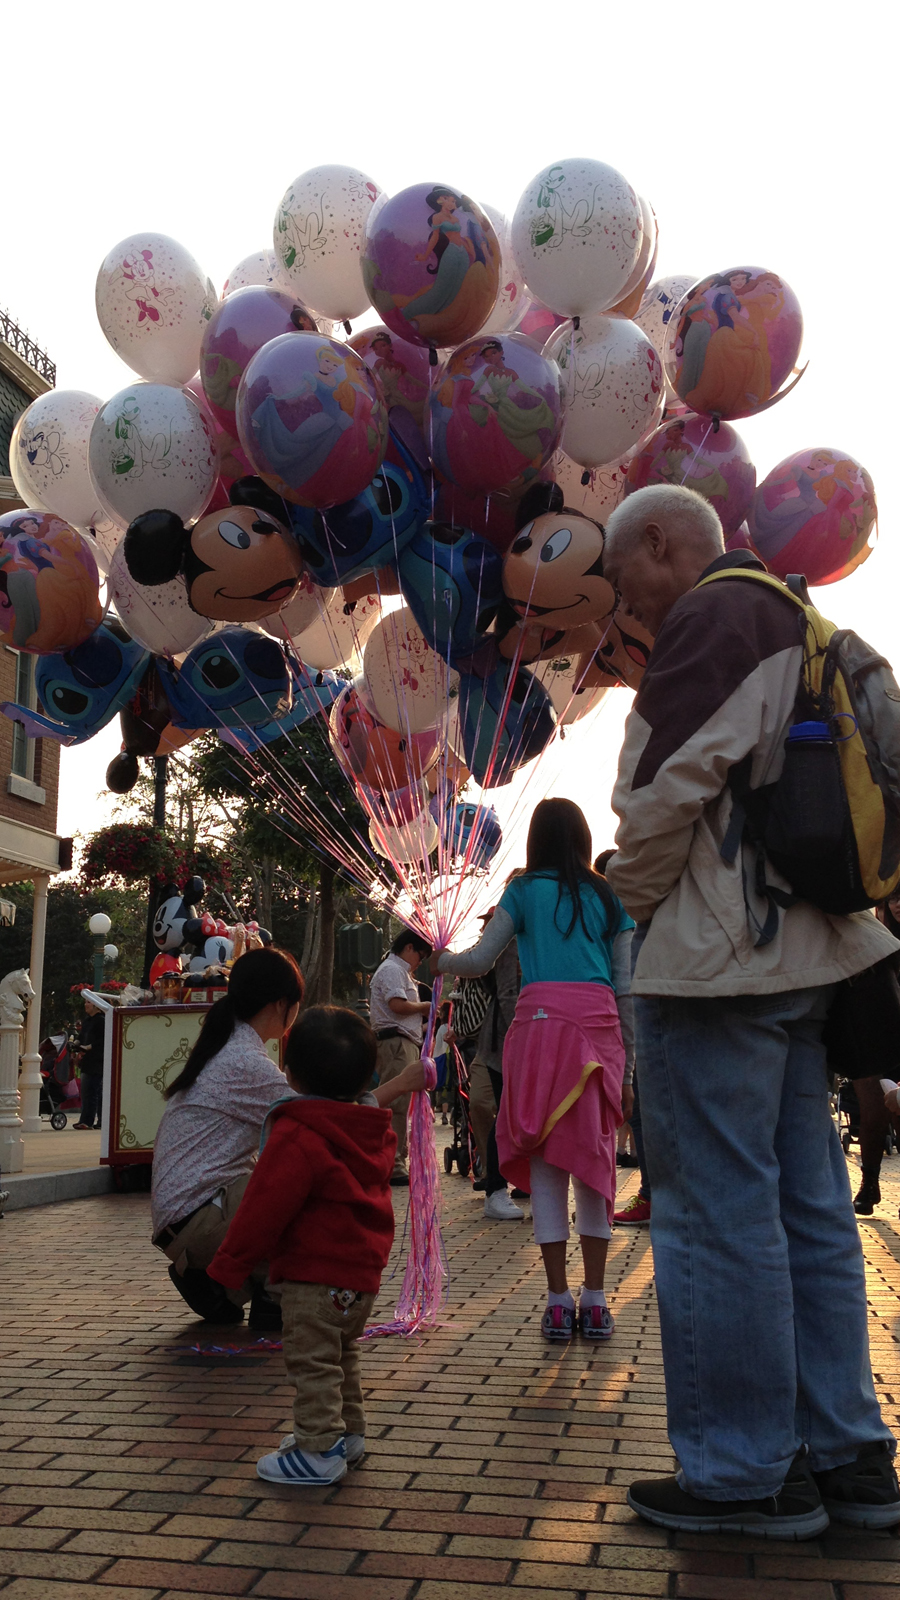 A toddler has fun with balloons at Hong Kong Disneyland. His grandfather would later look at me as I took a second photograph of the kid.